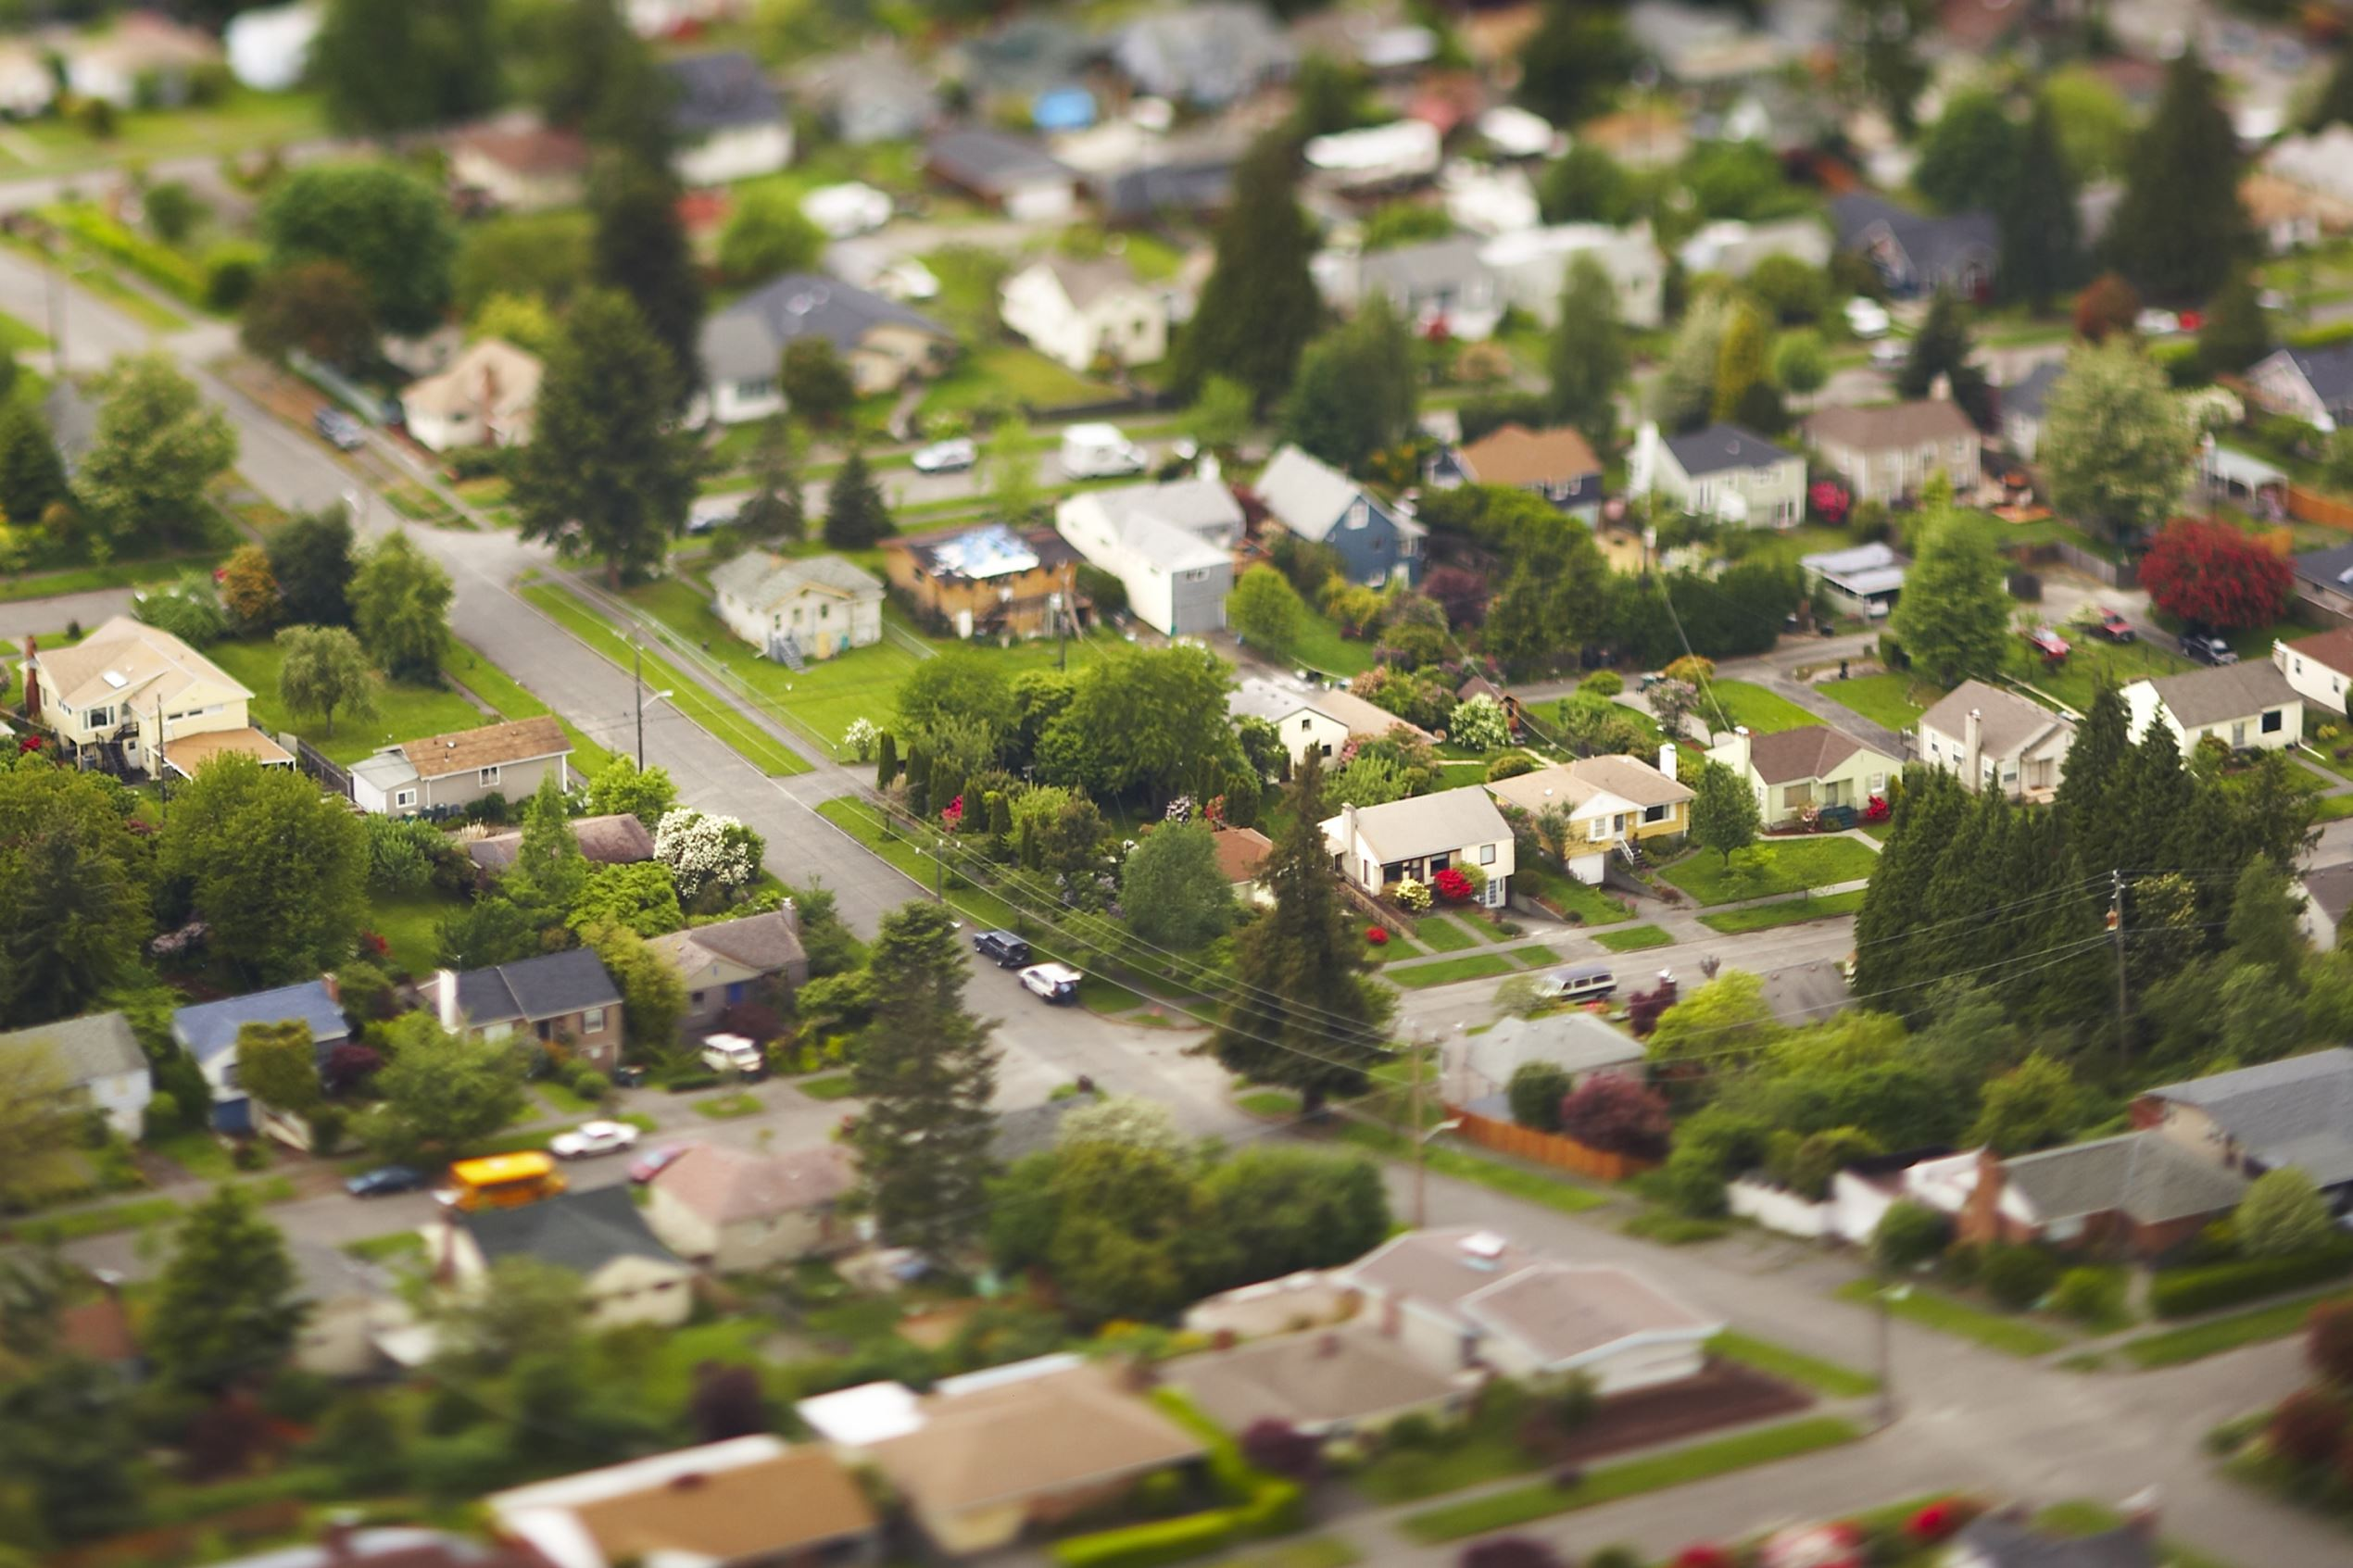 Aerial view of a suburban community.